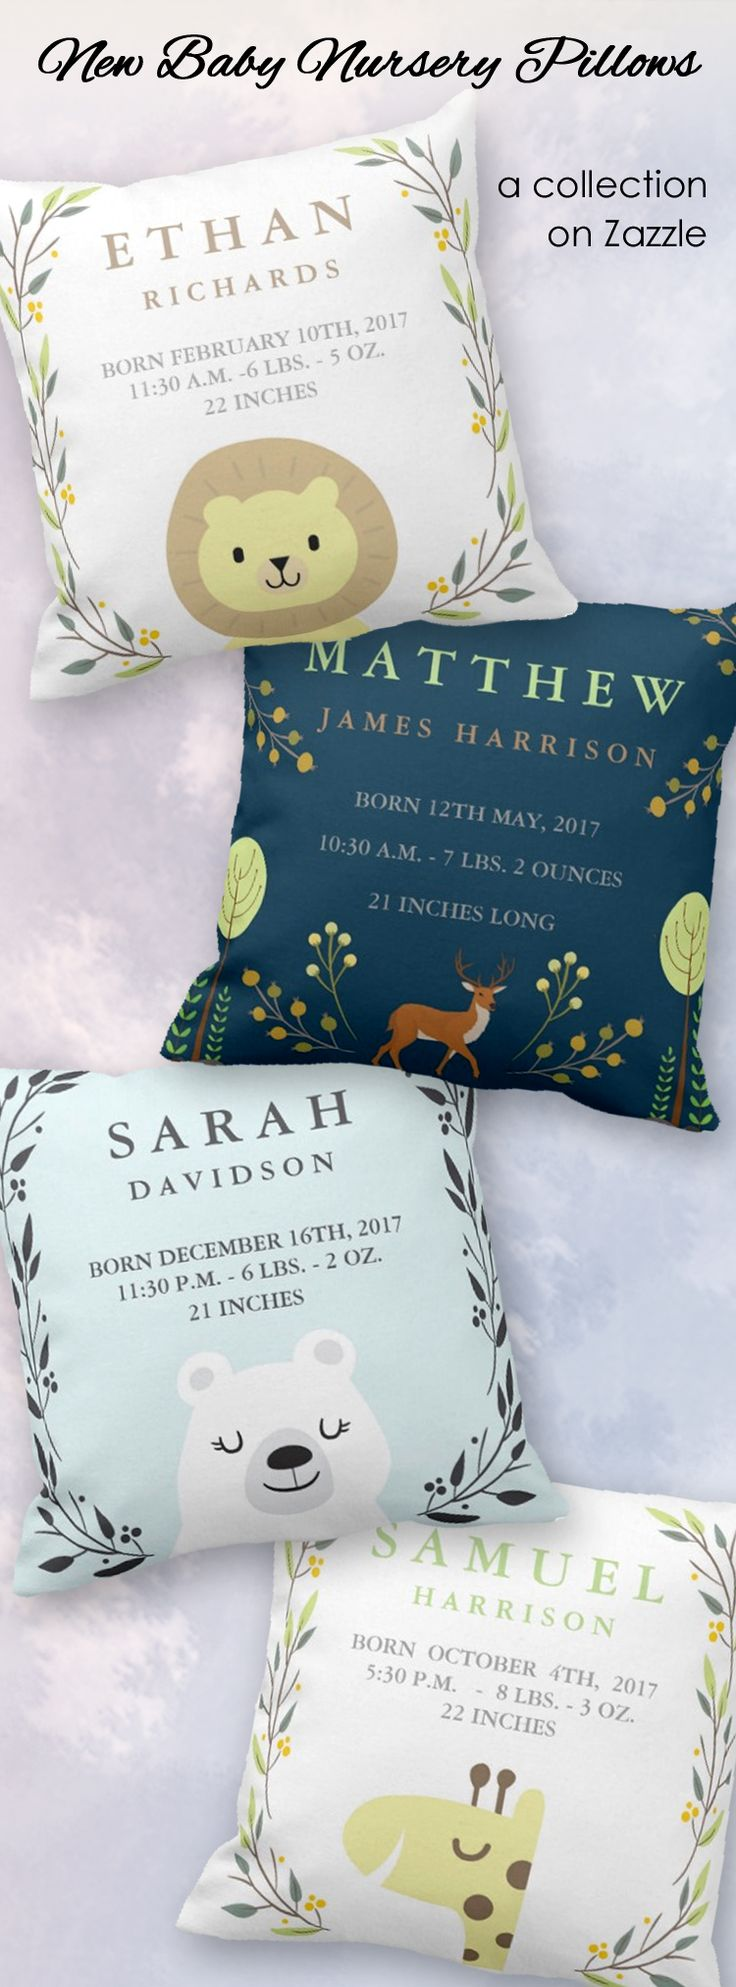 """Beautiful keepsake baby pillows can be easily personalized with baby's name and birth stats for a memorable keepsake gift to welcome the new li'l man or li'l lady 